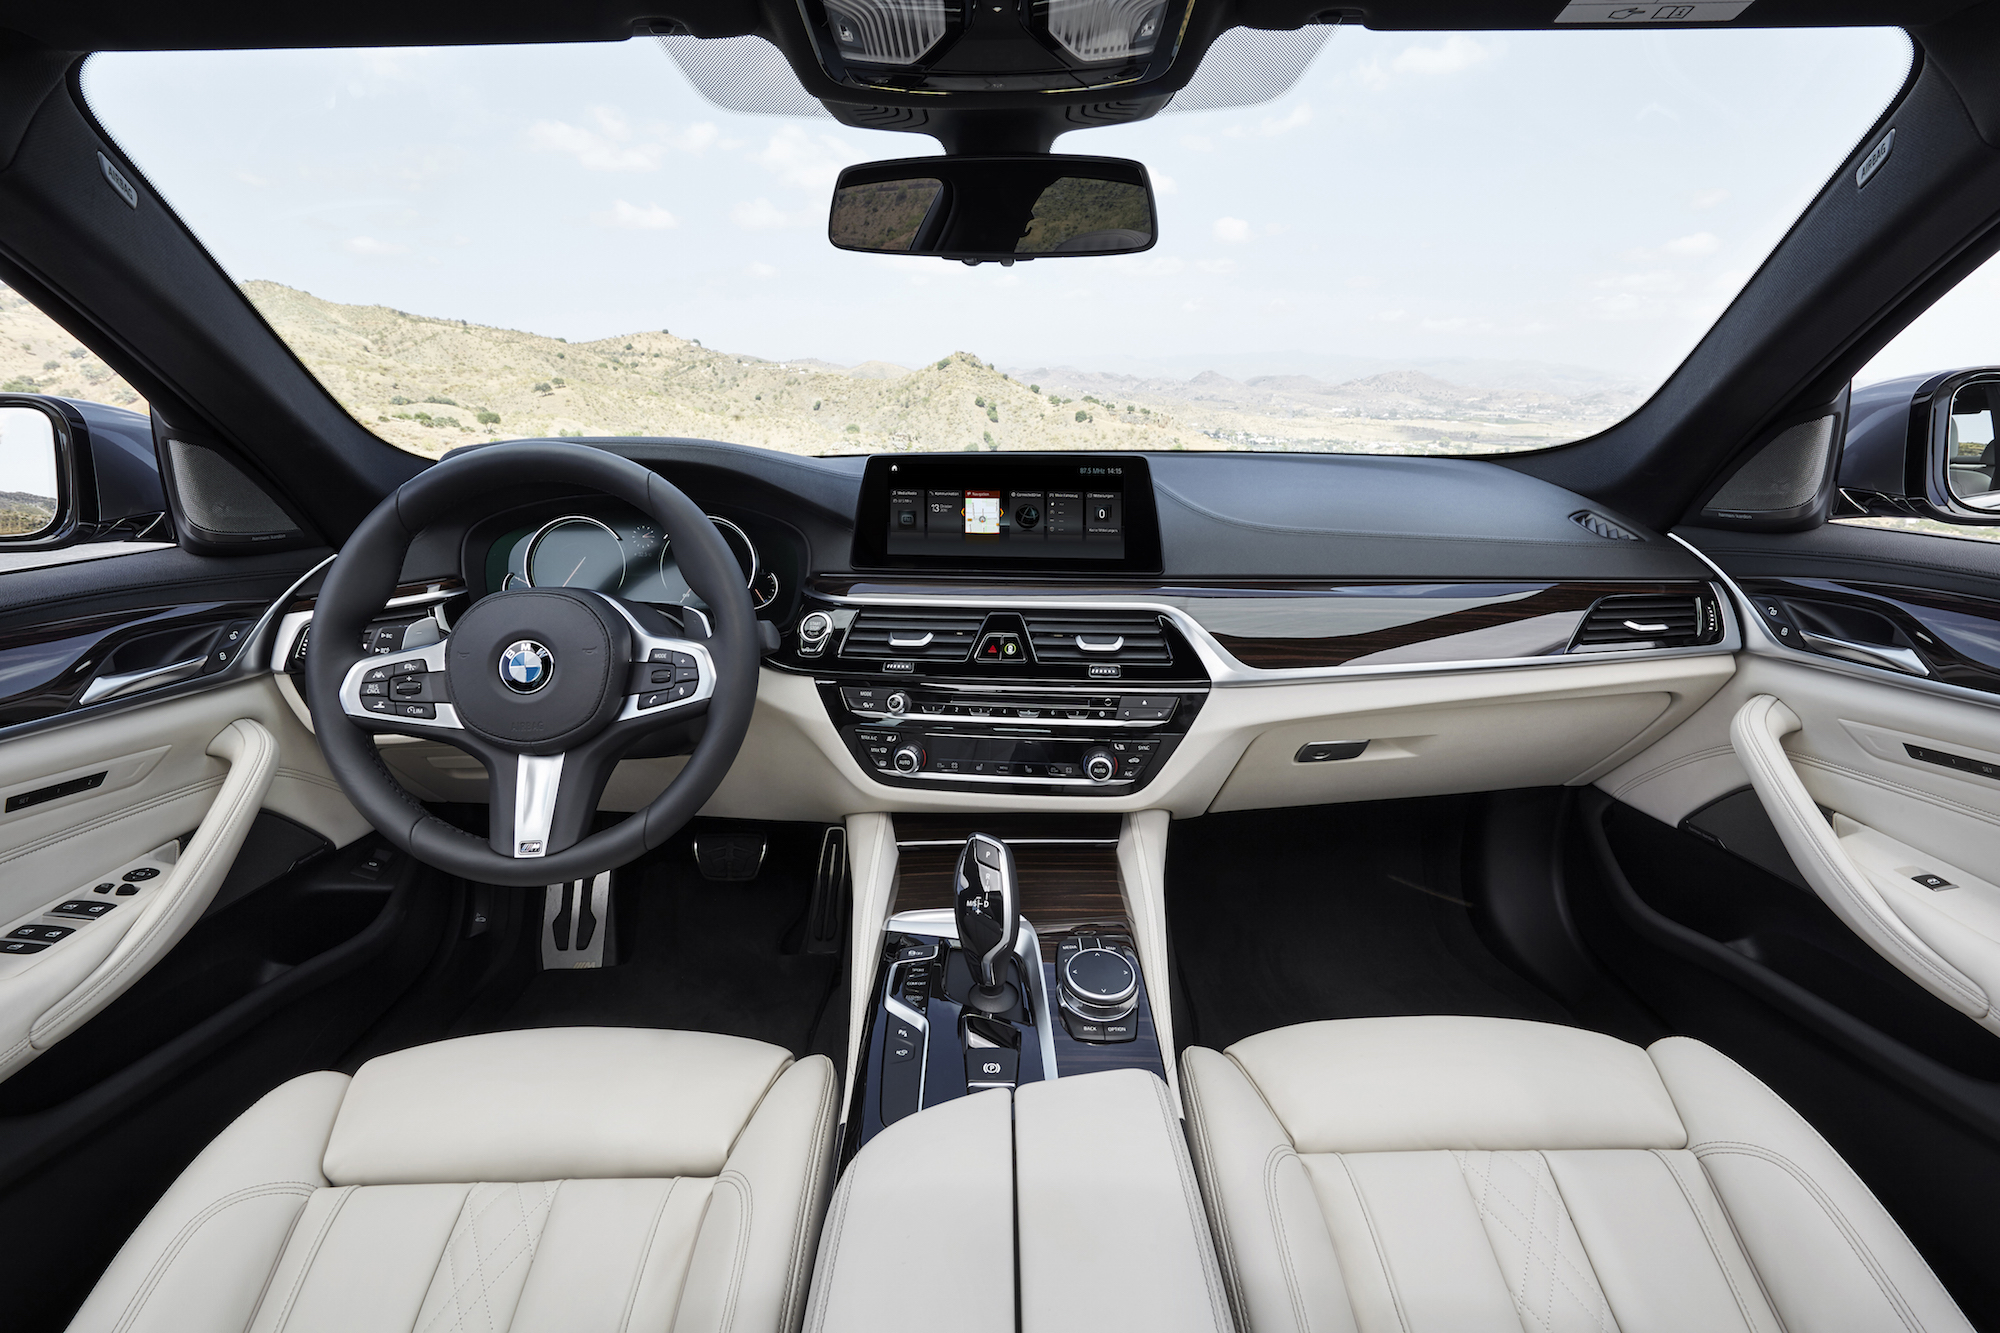 2017 BMW 540i XDrive New Interior